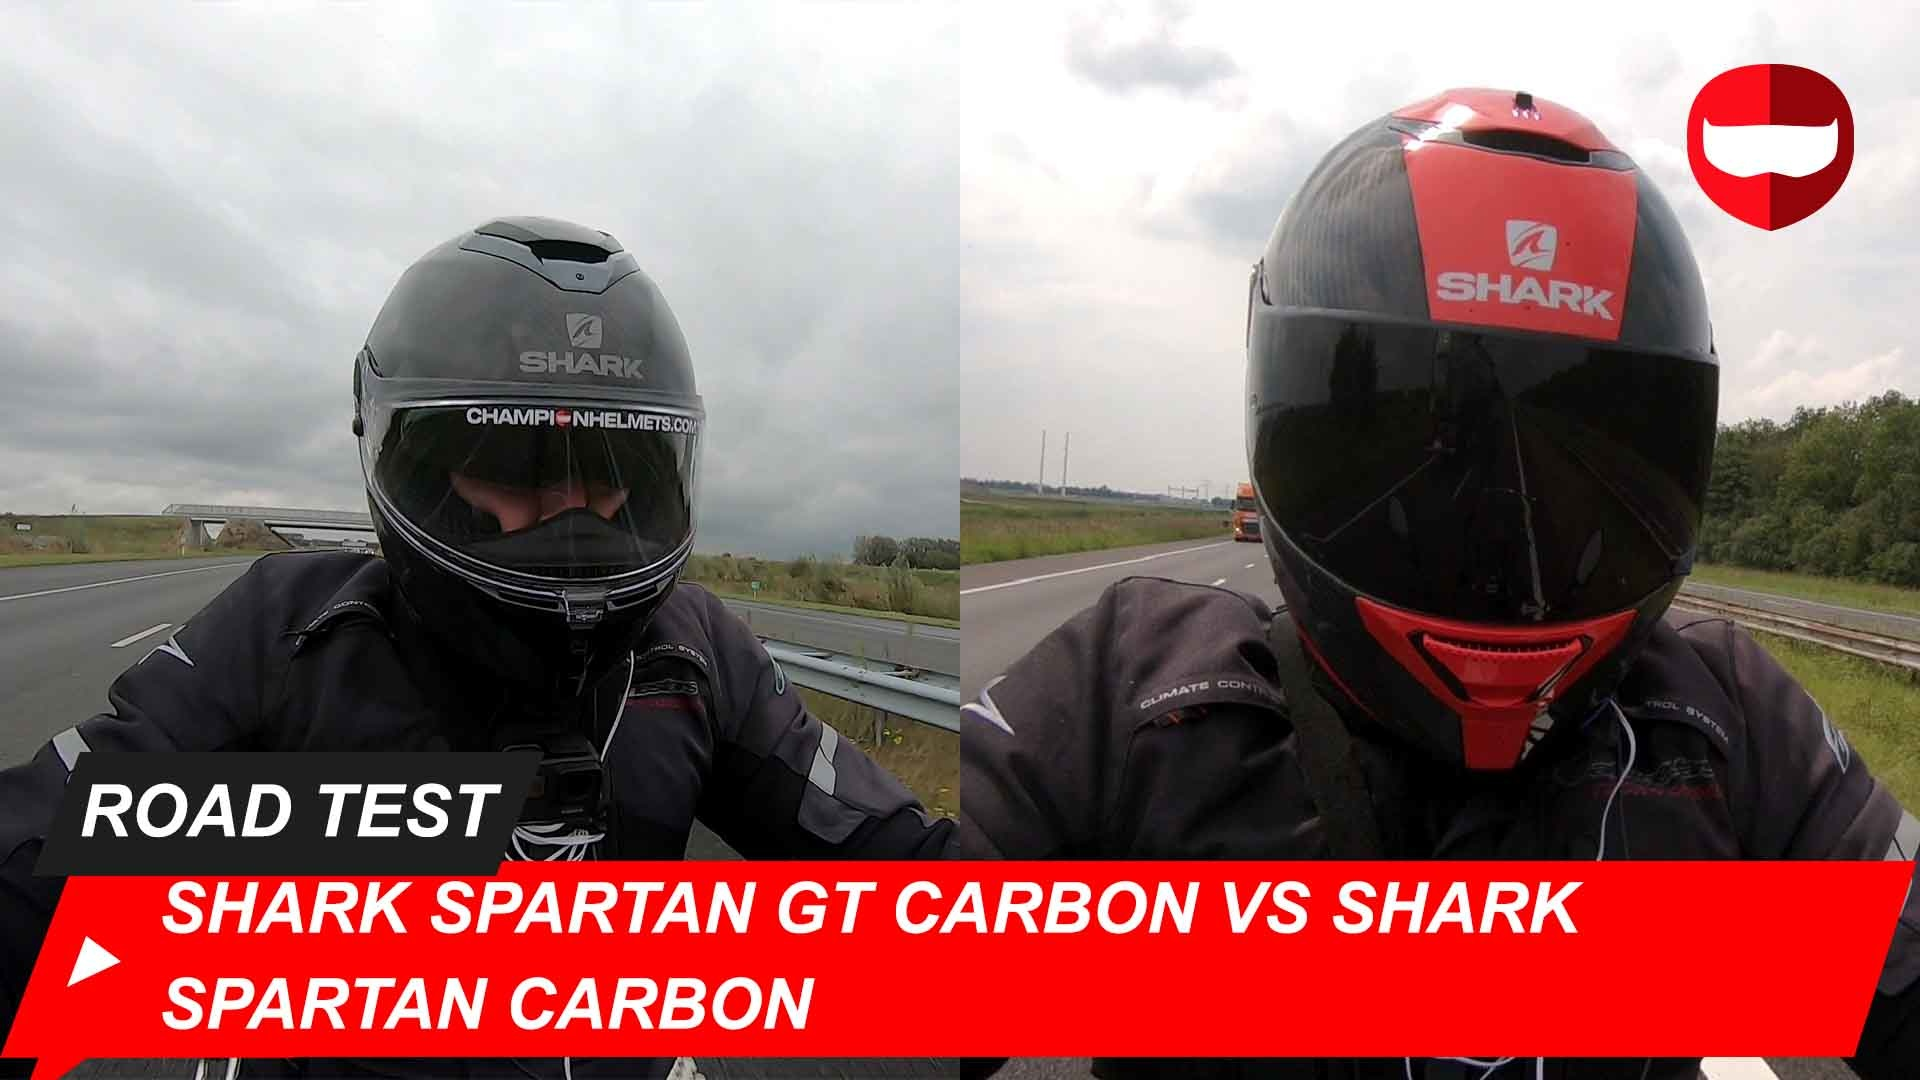 Shark Spartan GT Carbon vs Shark Spartan Carbon